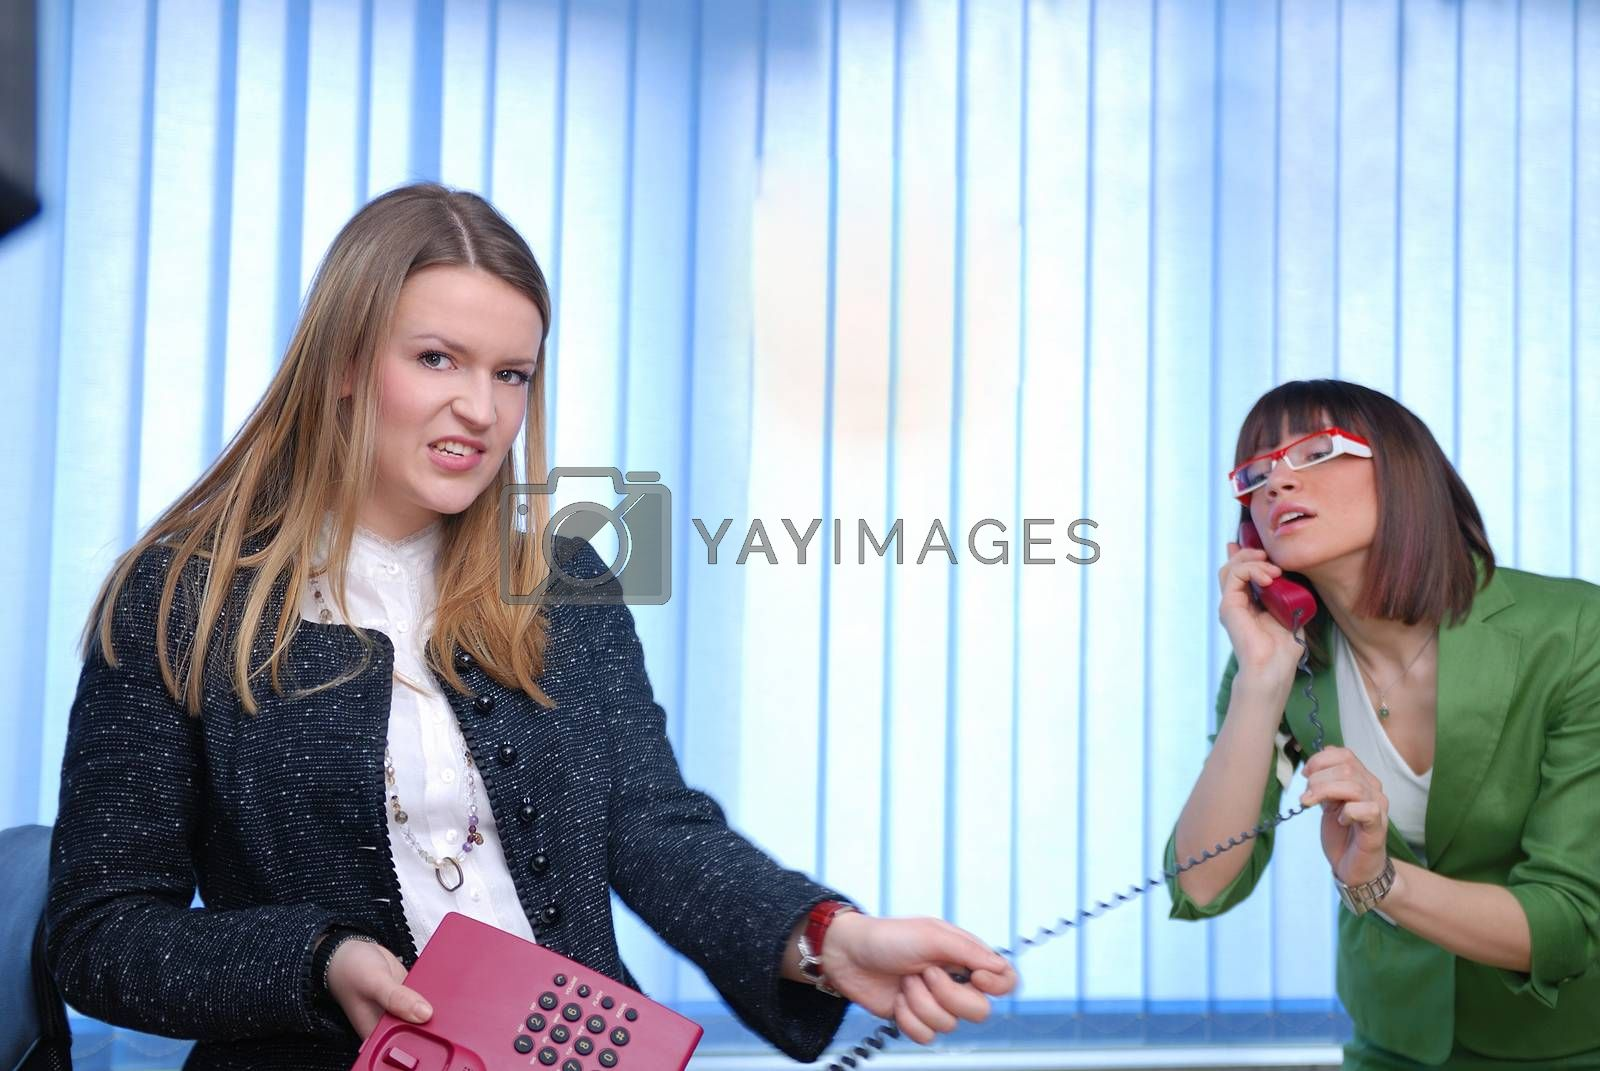 Royalty free image of wired communication by .shock